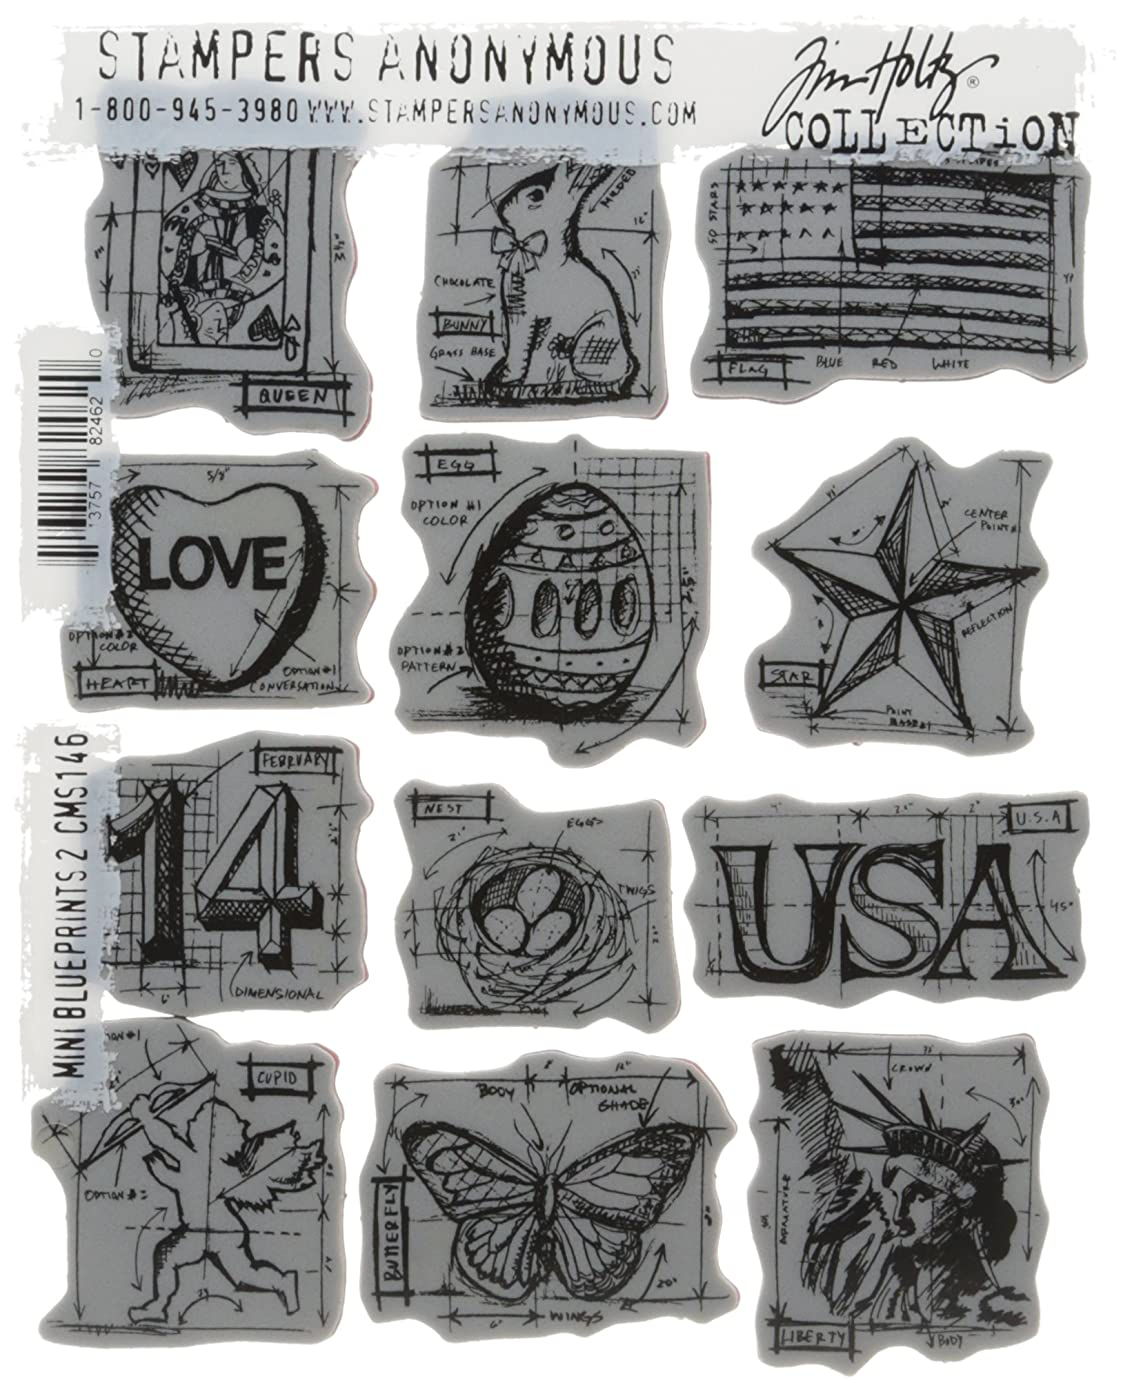 Stampers Anonymous Tim Holtz Cling Rubber Stamp Set, 7 by 8.5-Inch, Mini Blueprints